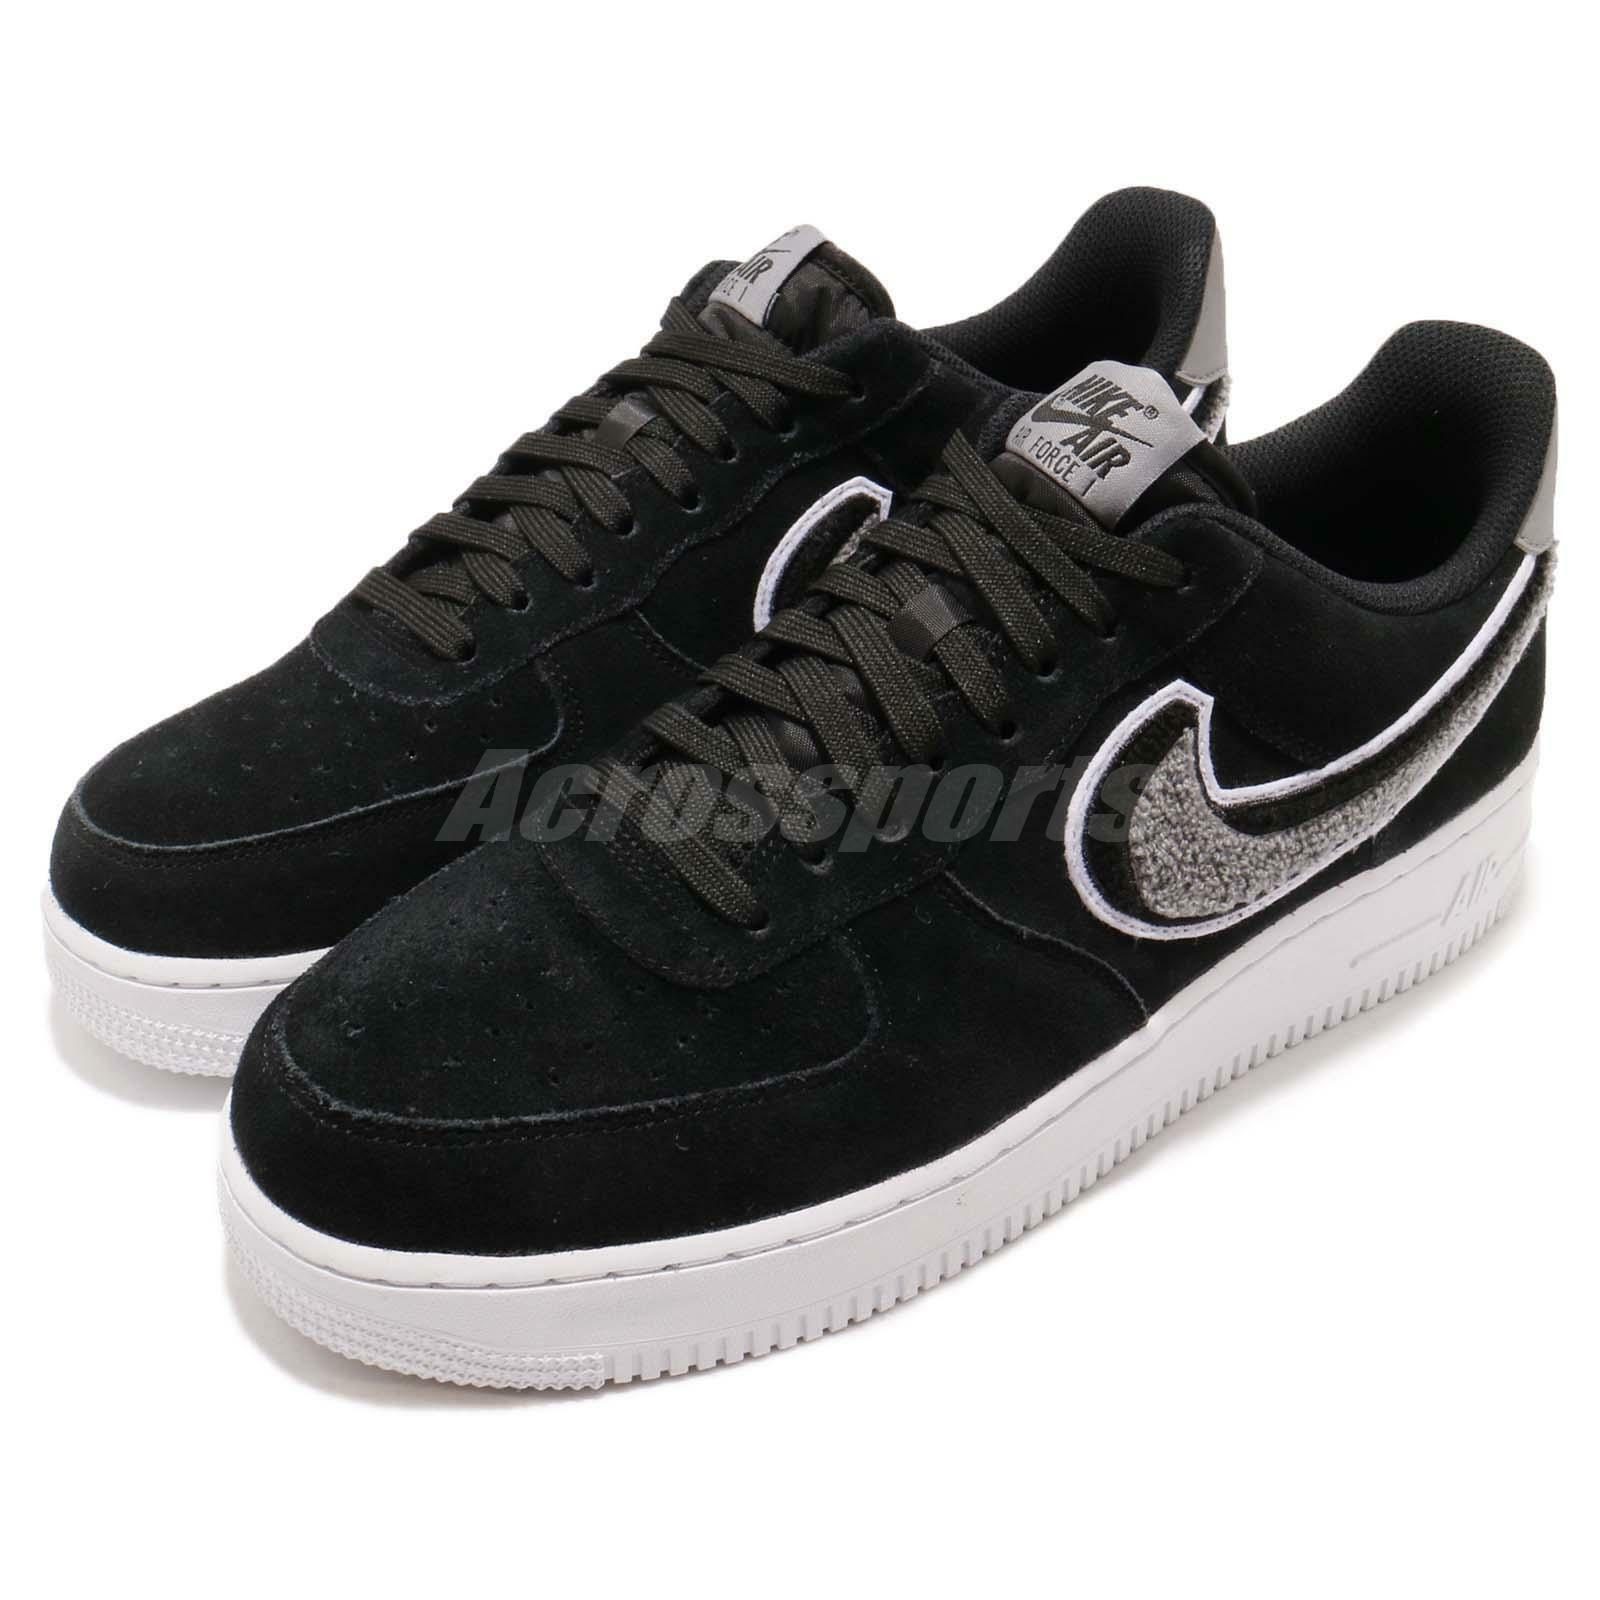 Nike Air Force 1 Chenille 07 LV8 AF1 Negro Chenille 1 Swoosh Hombre